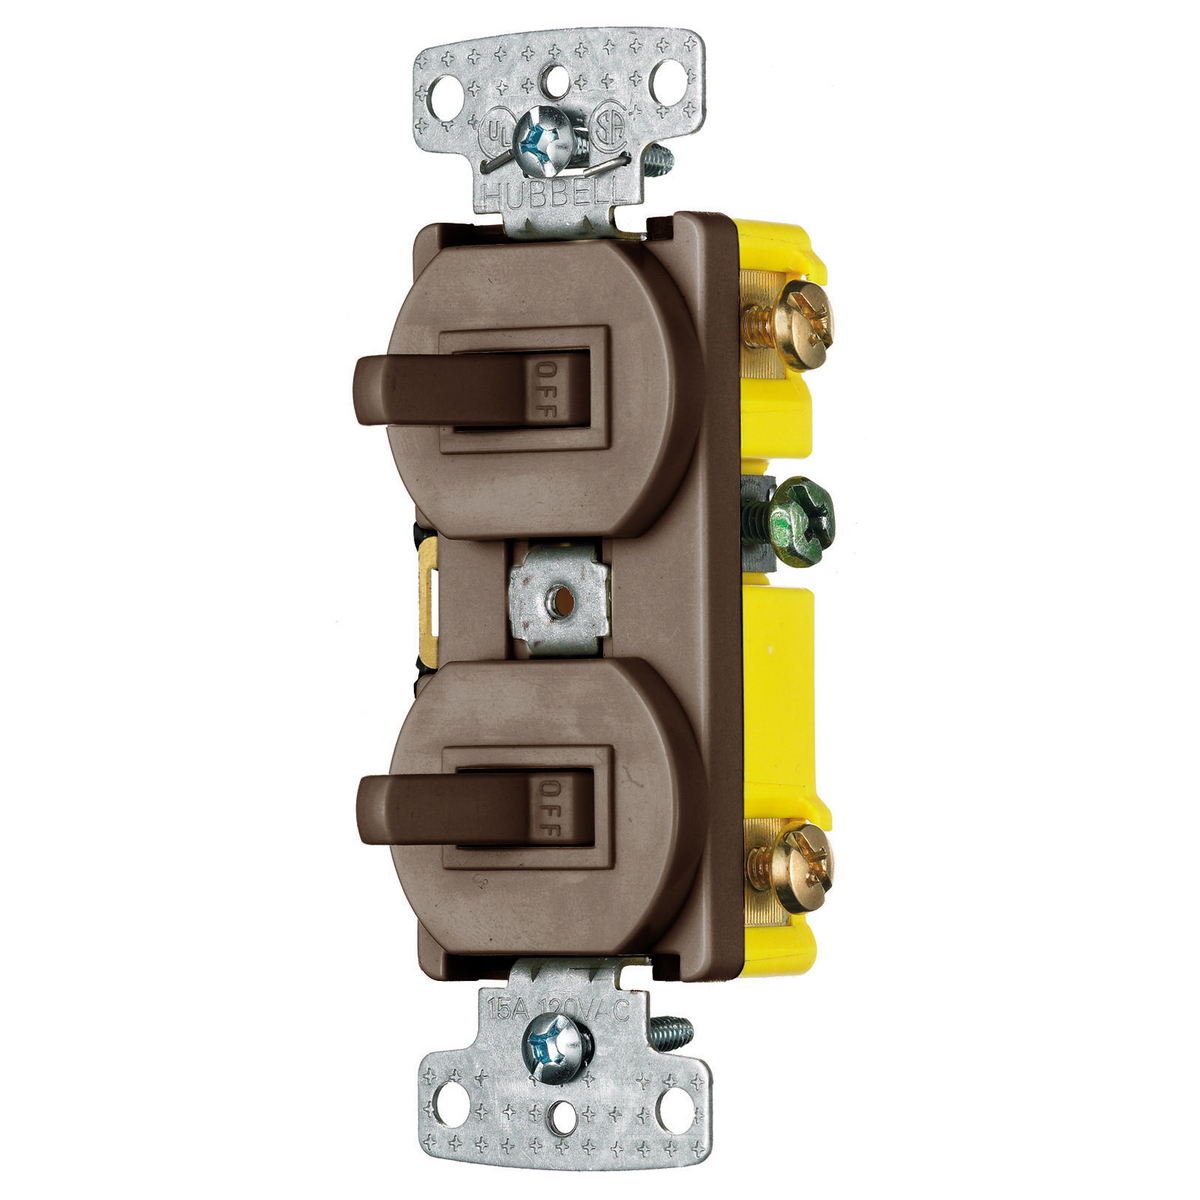 rc101 switches residential devices wiring devices electrical rh hubbell com residential electrical wiring devices leviton residential wiring devices